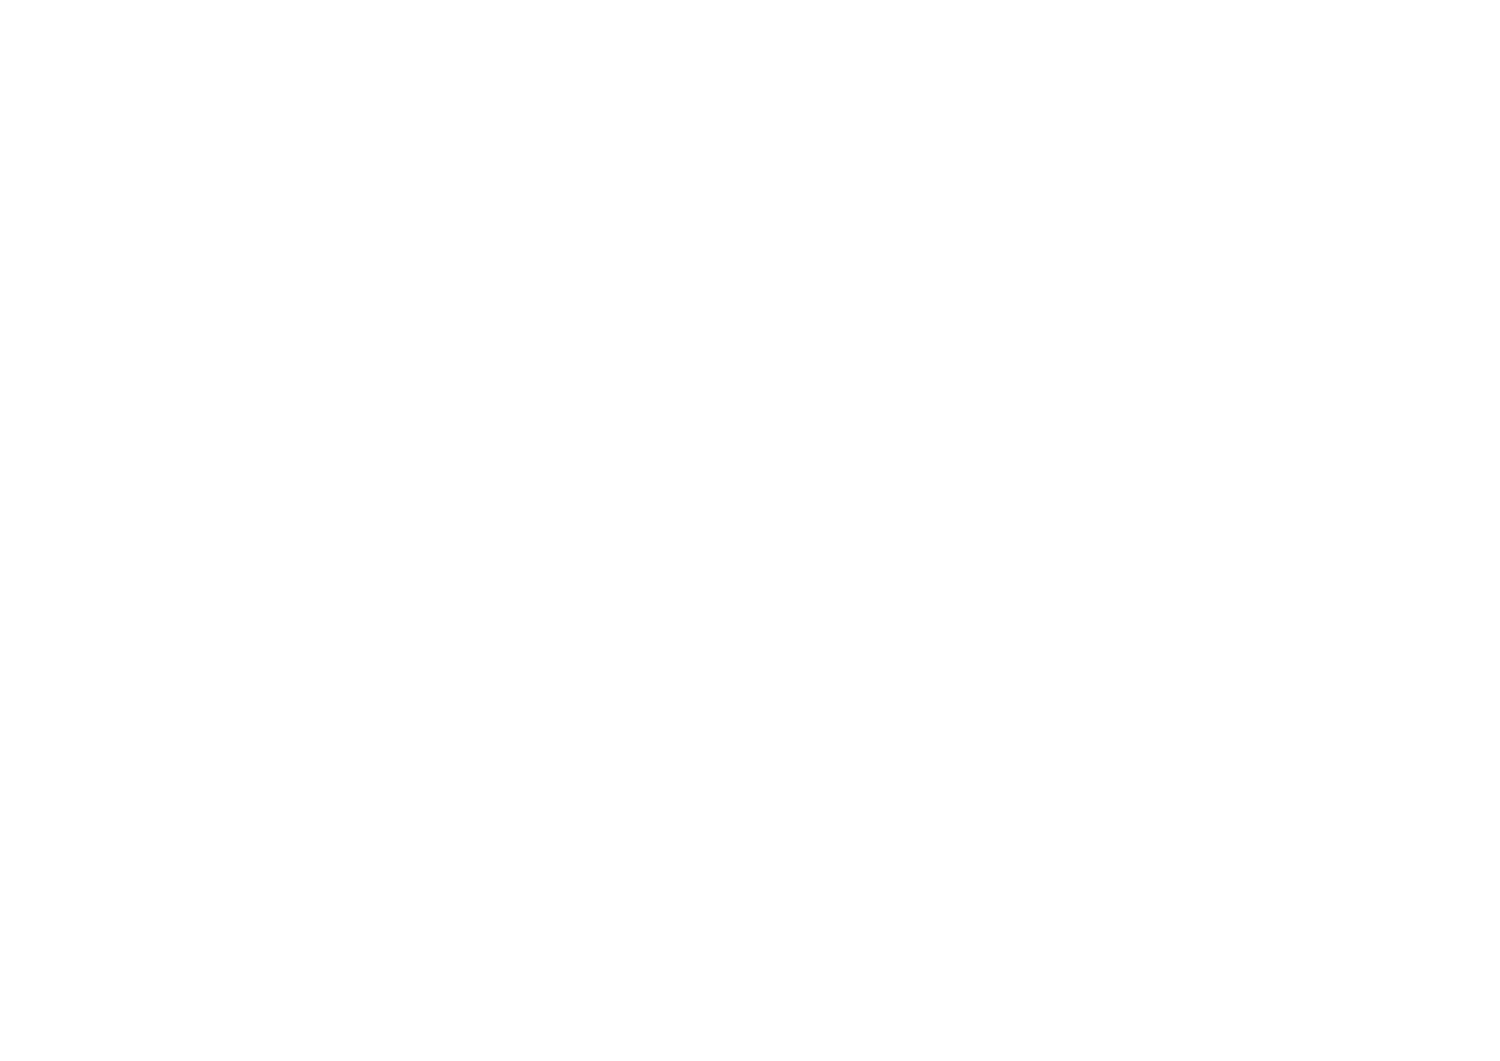 VALLONNE VINEYARDS